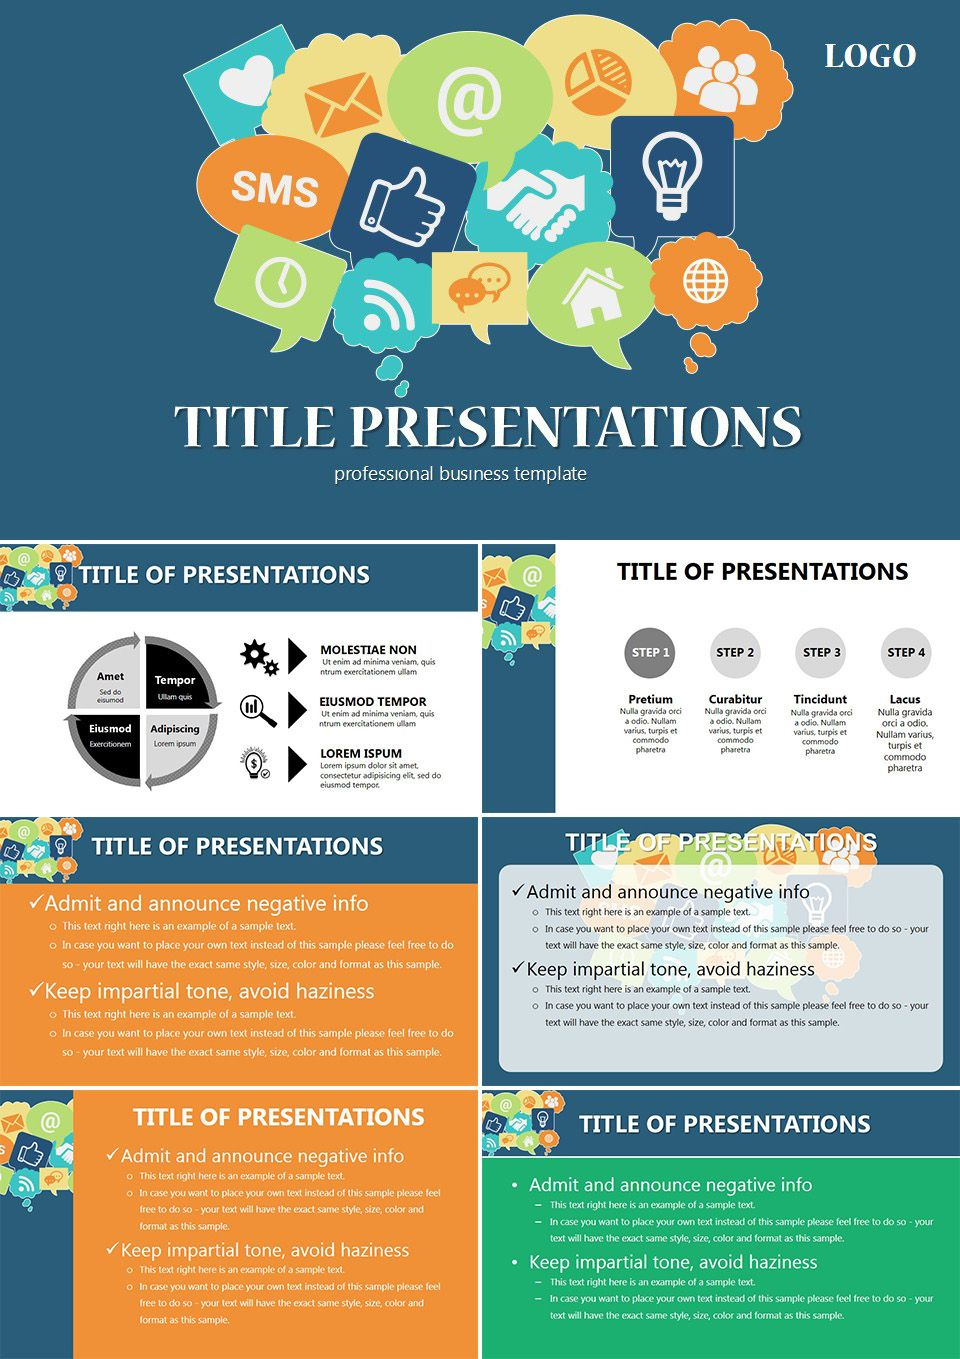 Social science research internet powerpoint templates powerpoint powerpoint templates social science research internet powerpoint templates toneelgroepblik Choice Image